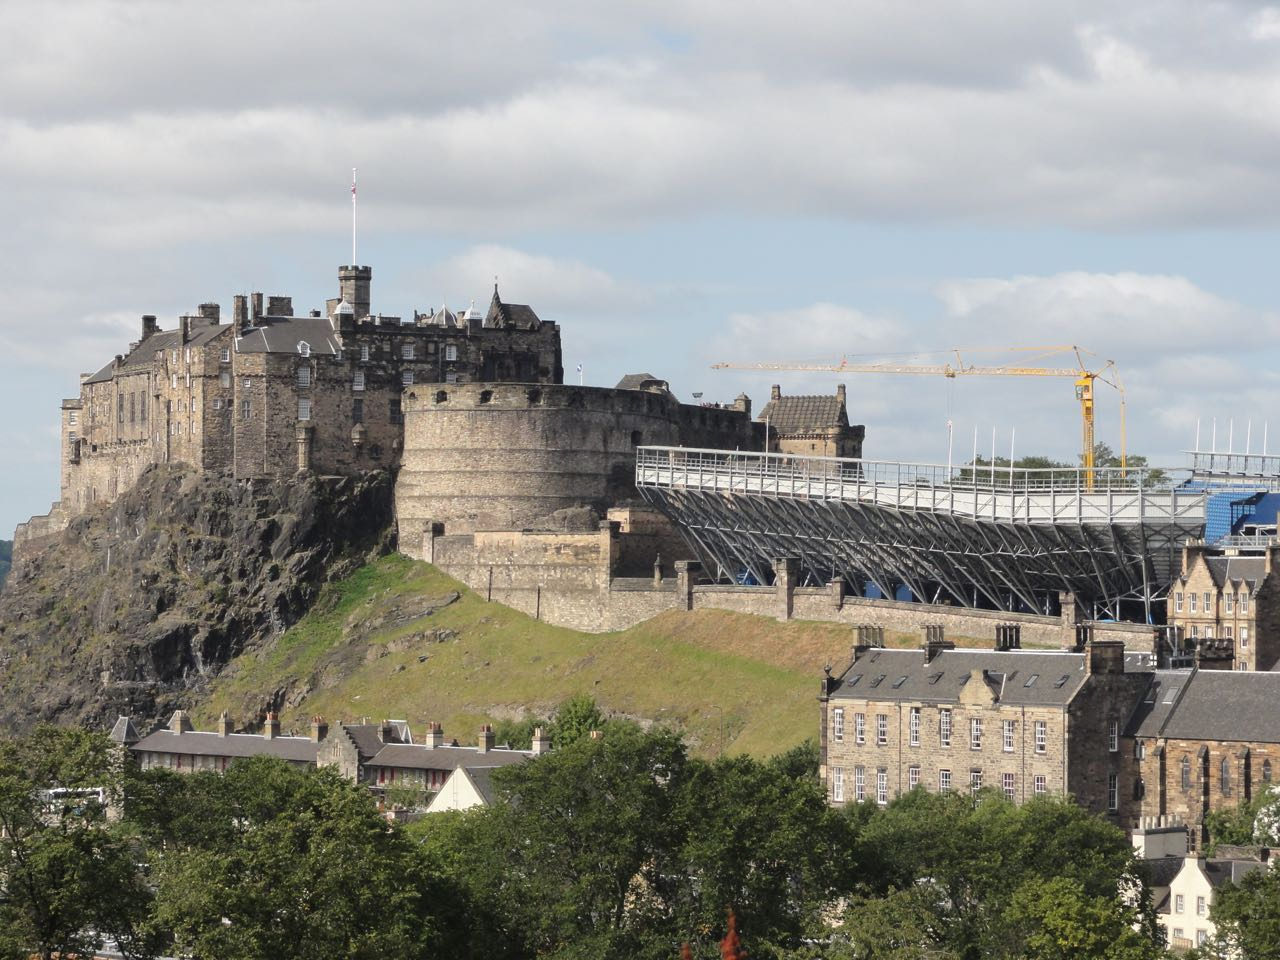 Edinburgh Castle from the roof garden at the Museum of Scotland. You can see the temporary stands being removed.